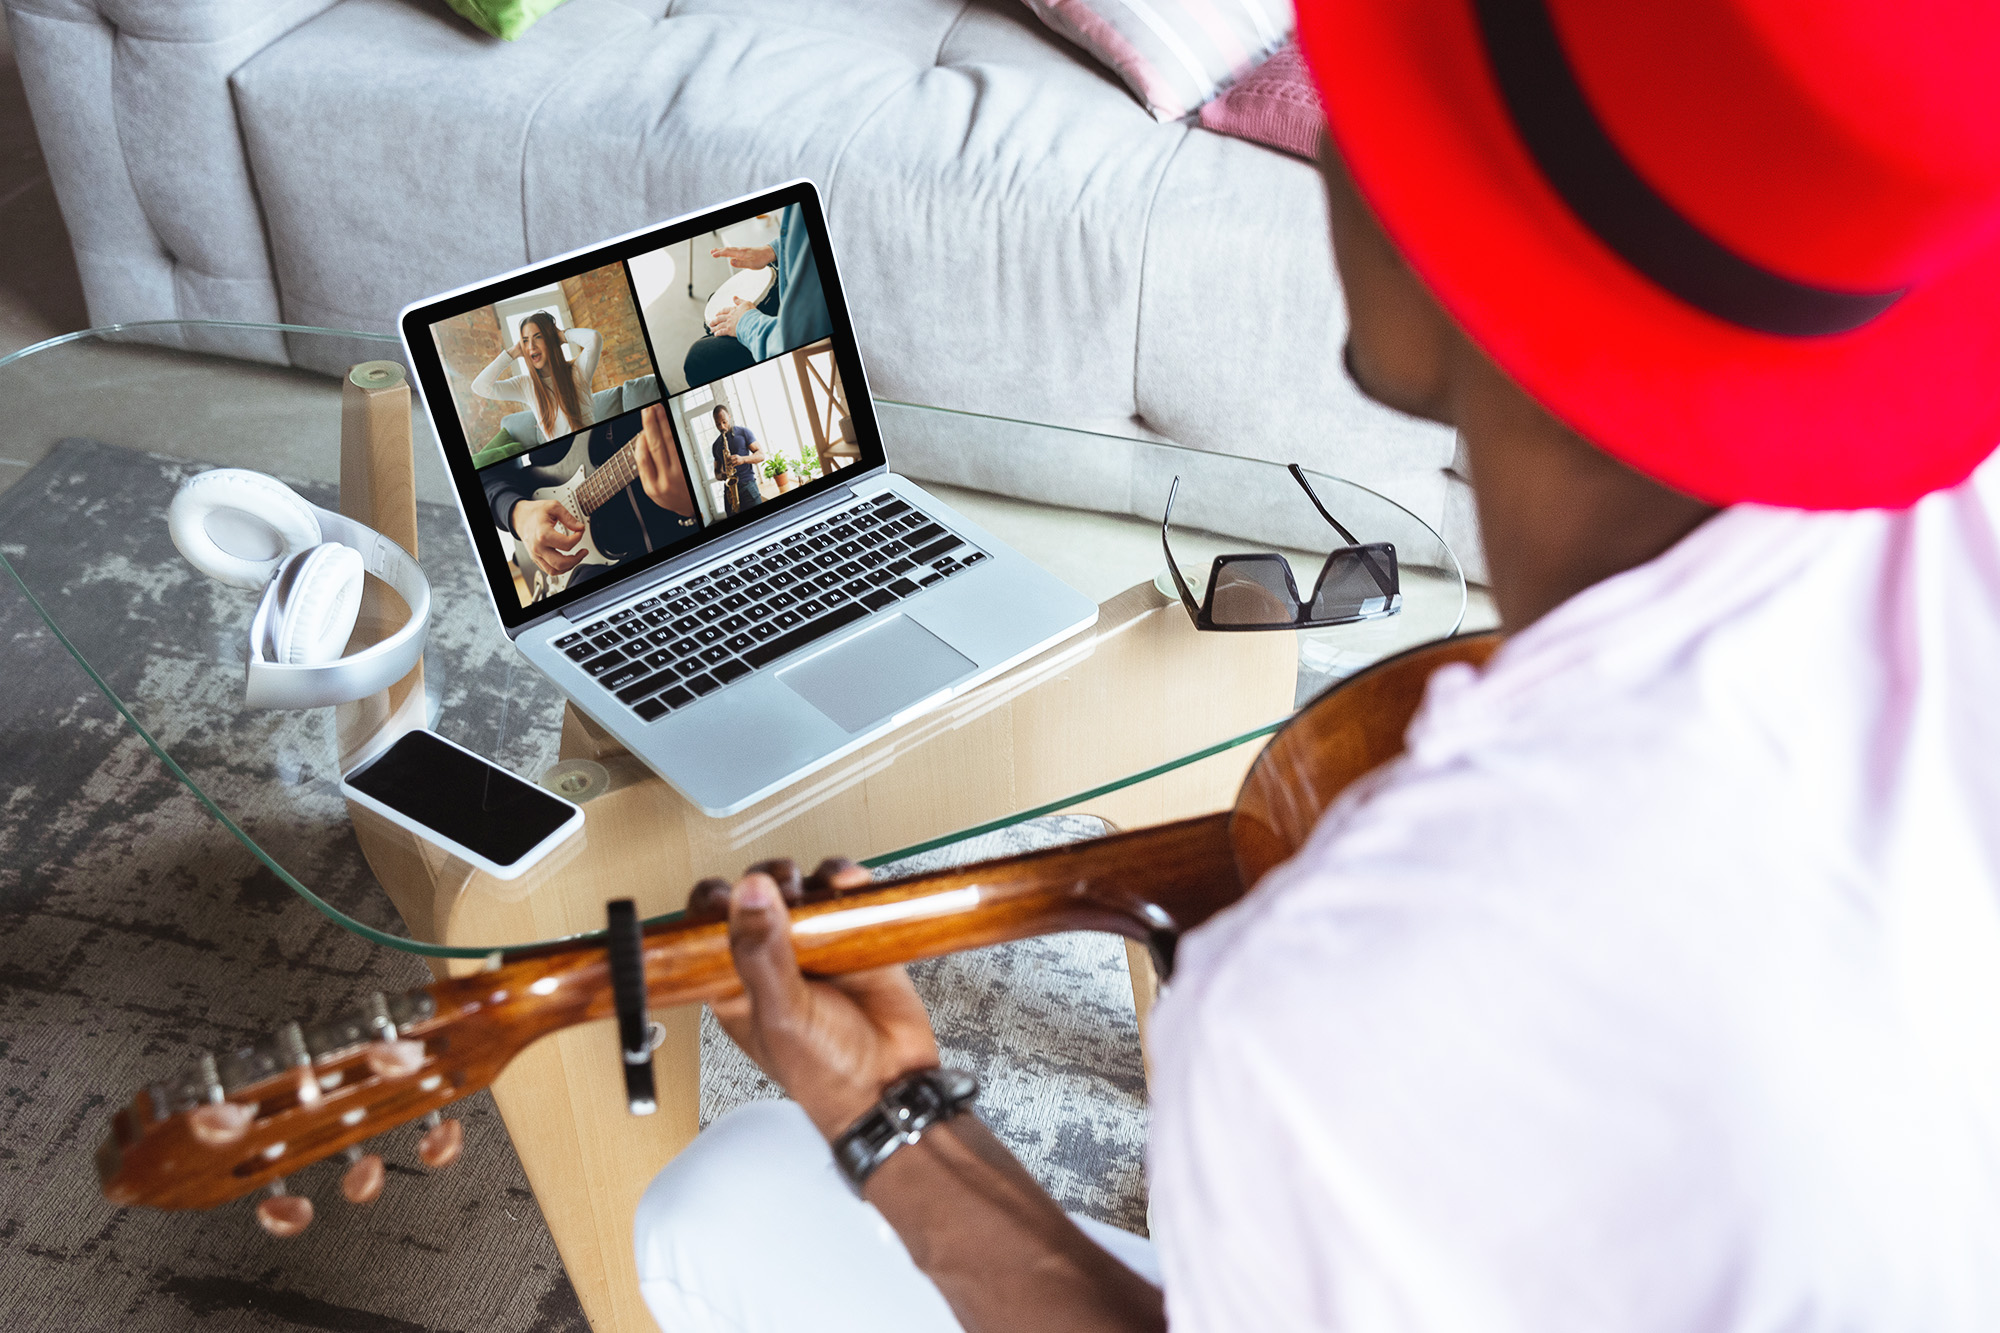 A man playing guitar watches a laptop screen where four other people are singing and/or playing instruments.